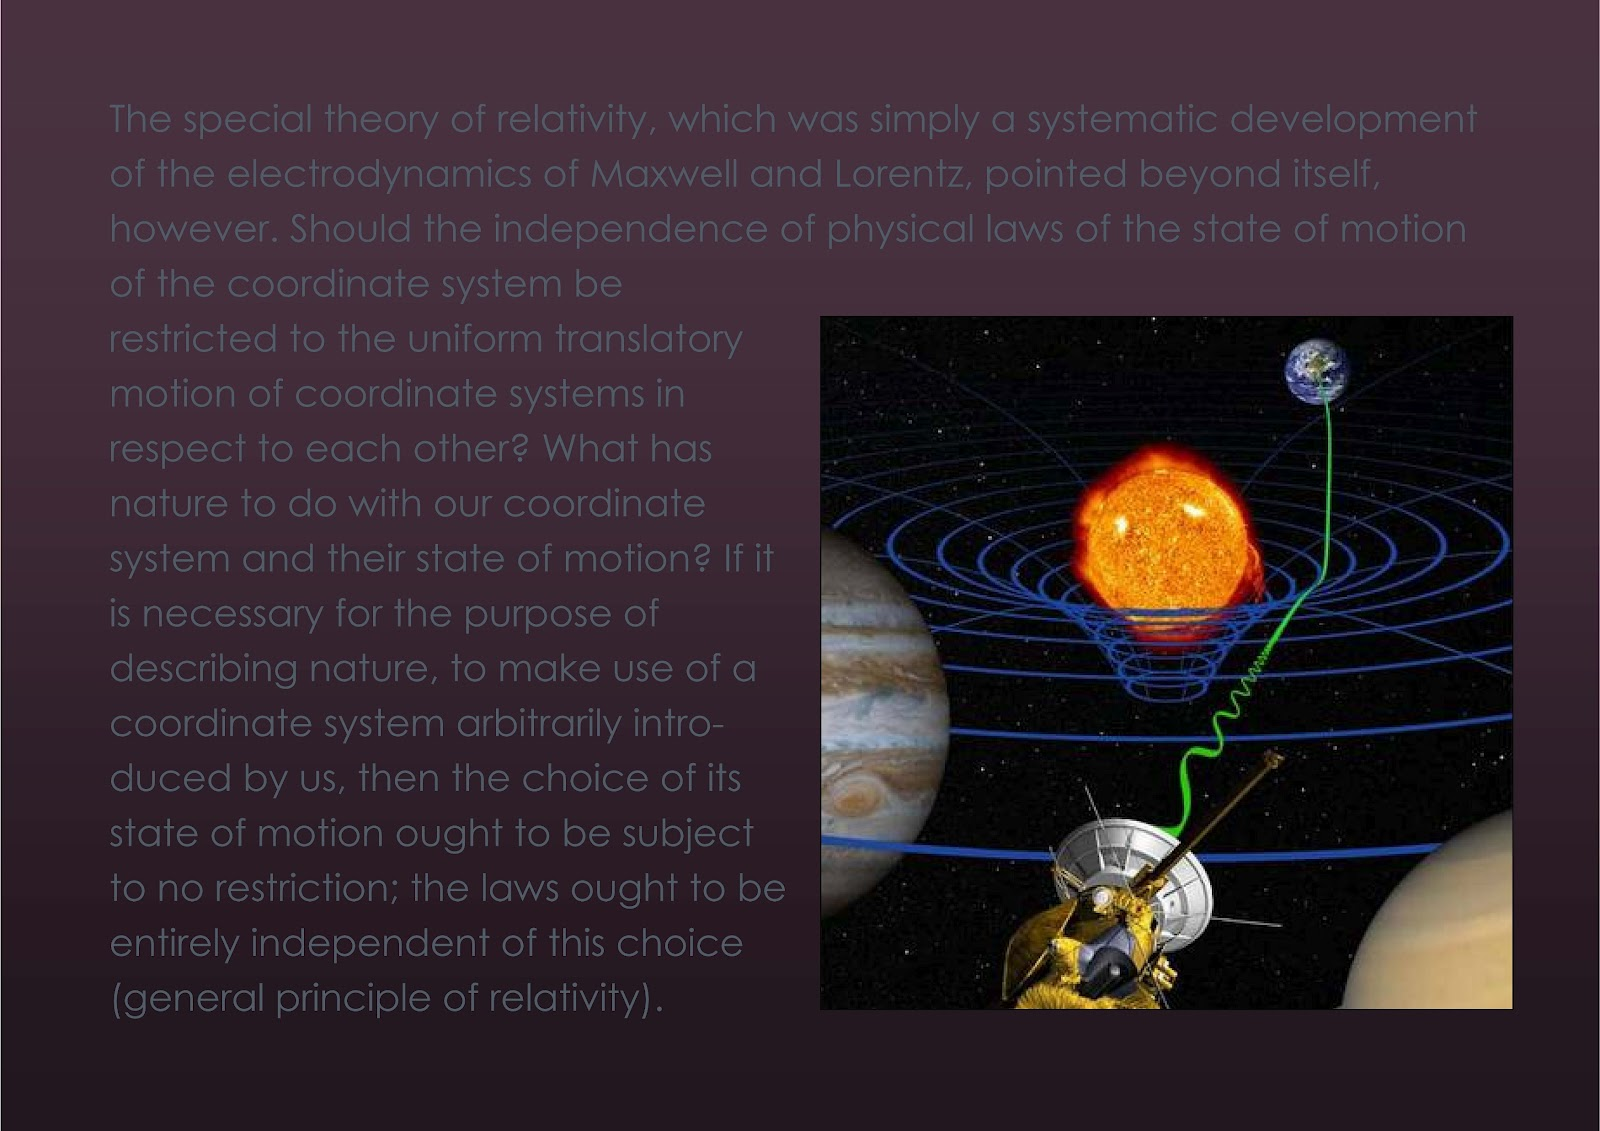 einstein theory of relativity For 100 years, the general theory of relativity has been a pillar of modern physics the basic idea is so elegant that you don't need superpowers to understand it.